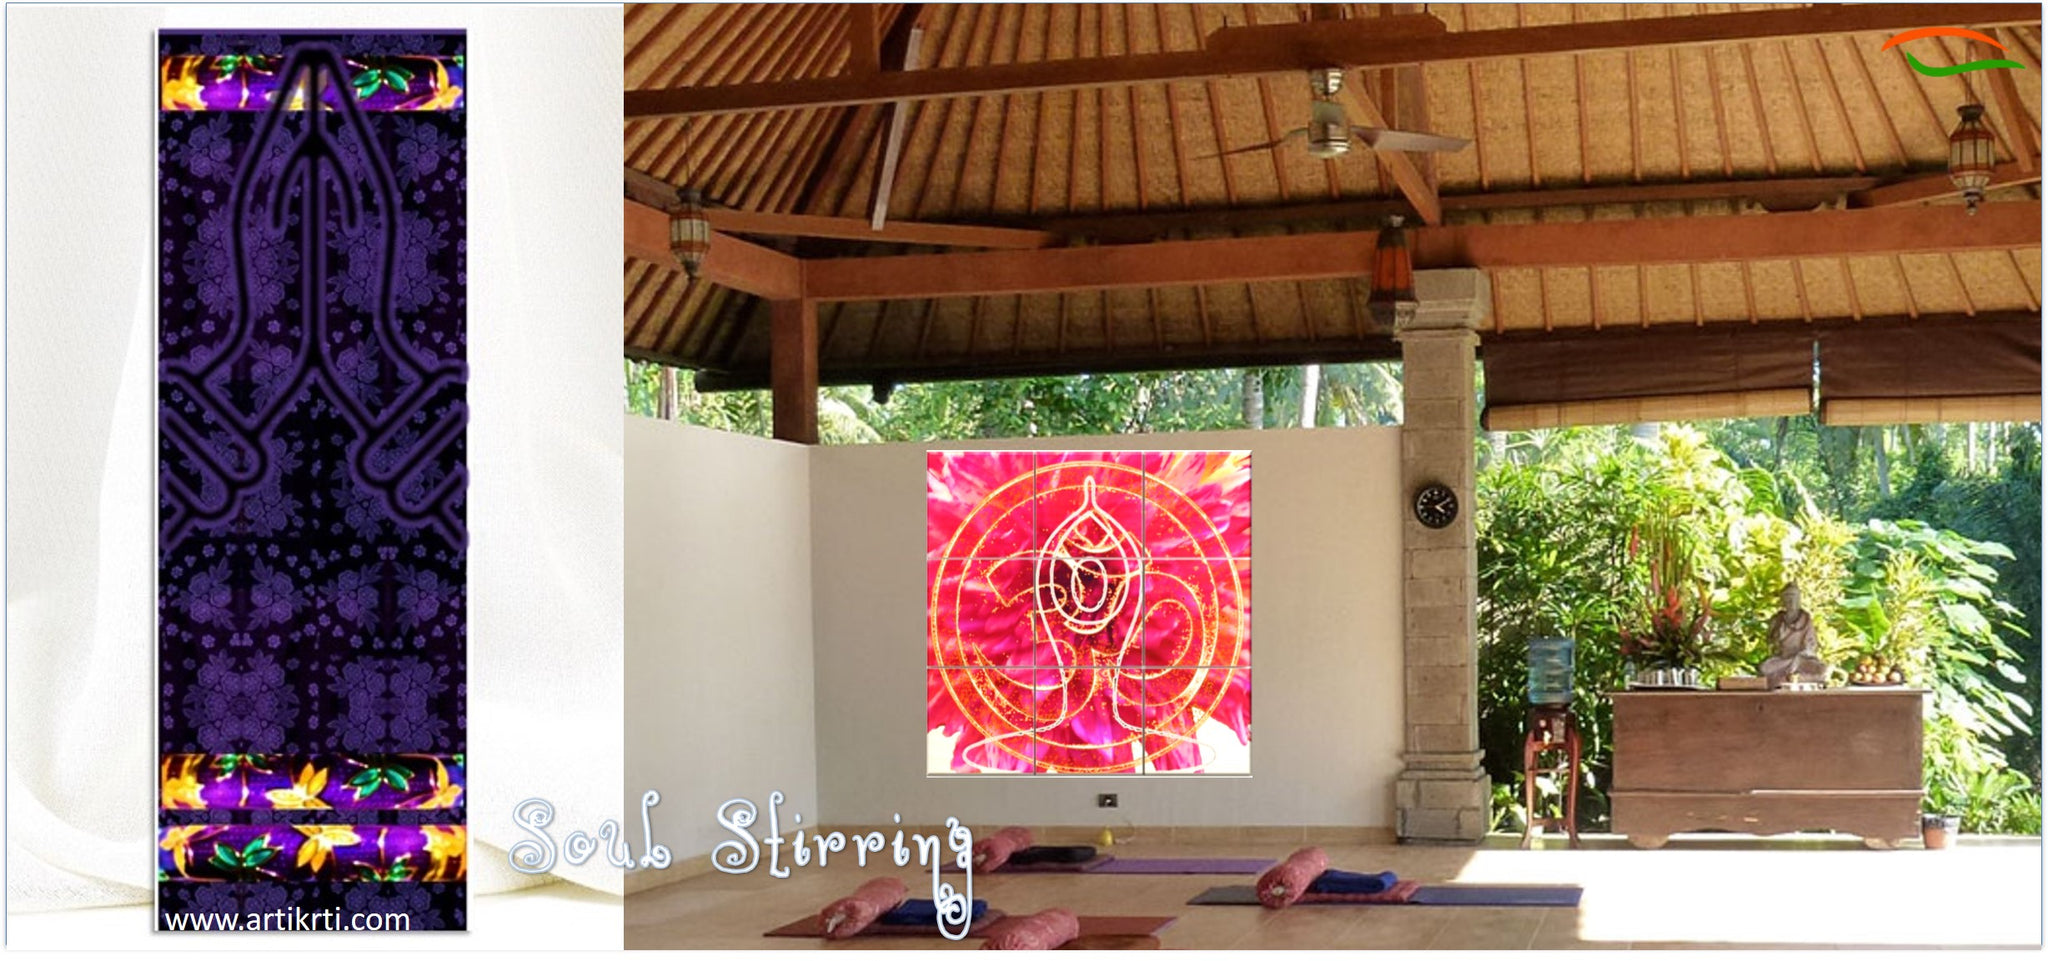 namaste-yoga-mats-om-aum-sun-salutation-wood-print-tapestry-yoga-studio-decor-artikrti